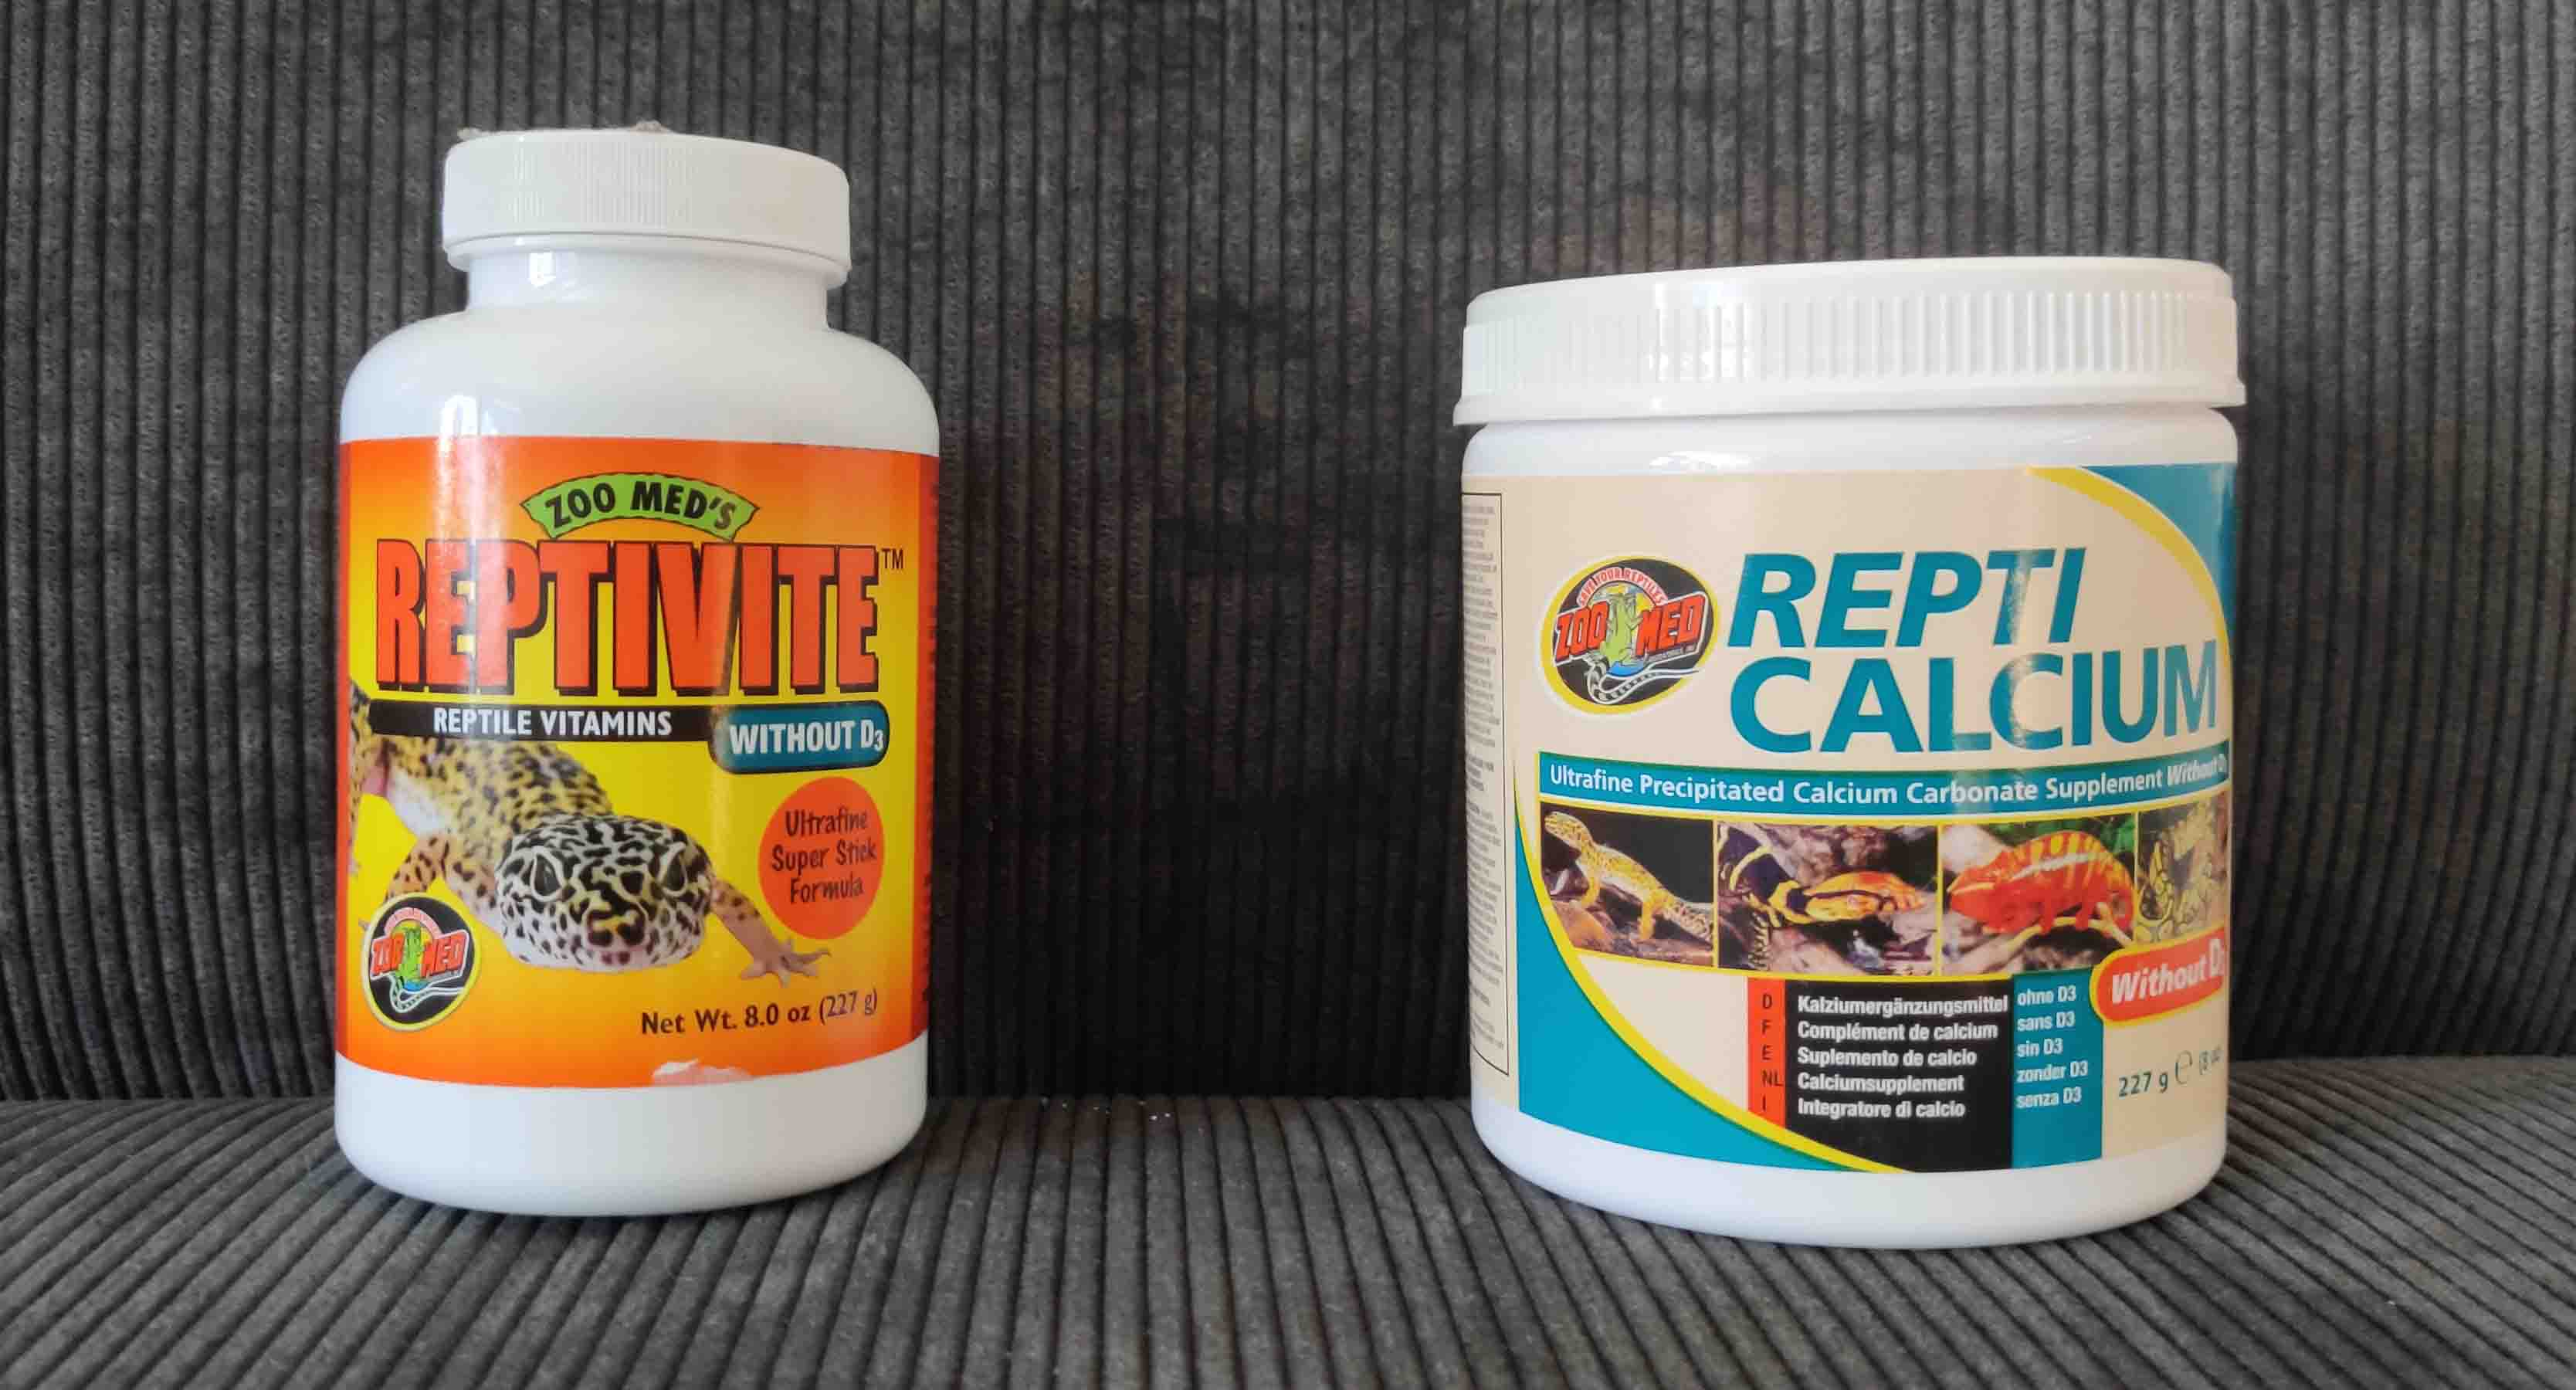 Bearded Dragon supplements vitamins and calcium without d3 from zoomed